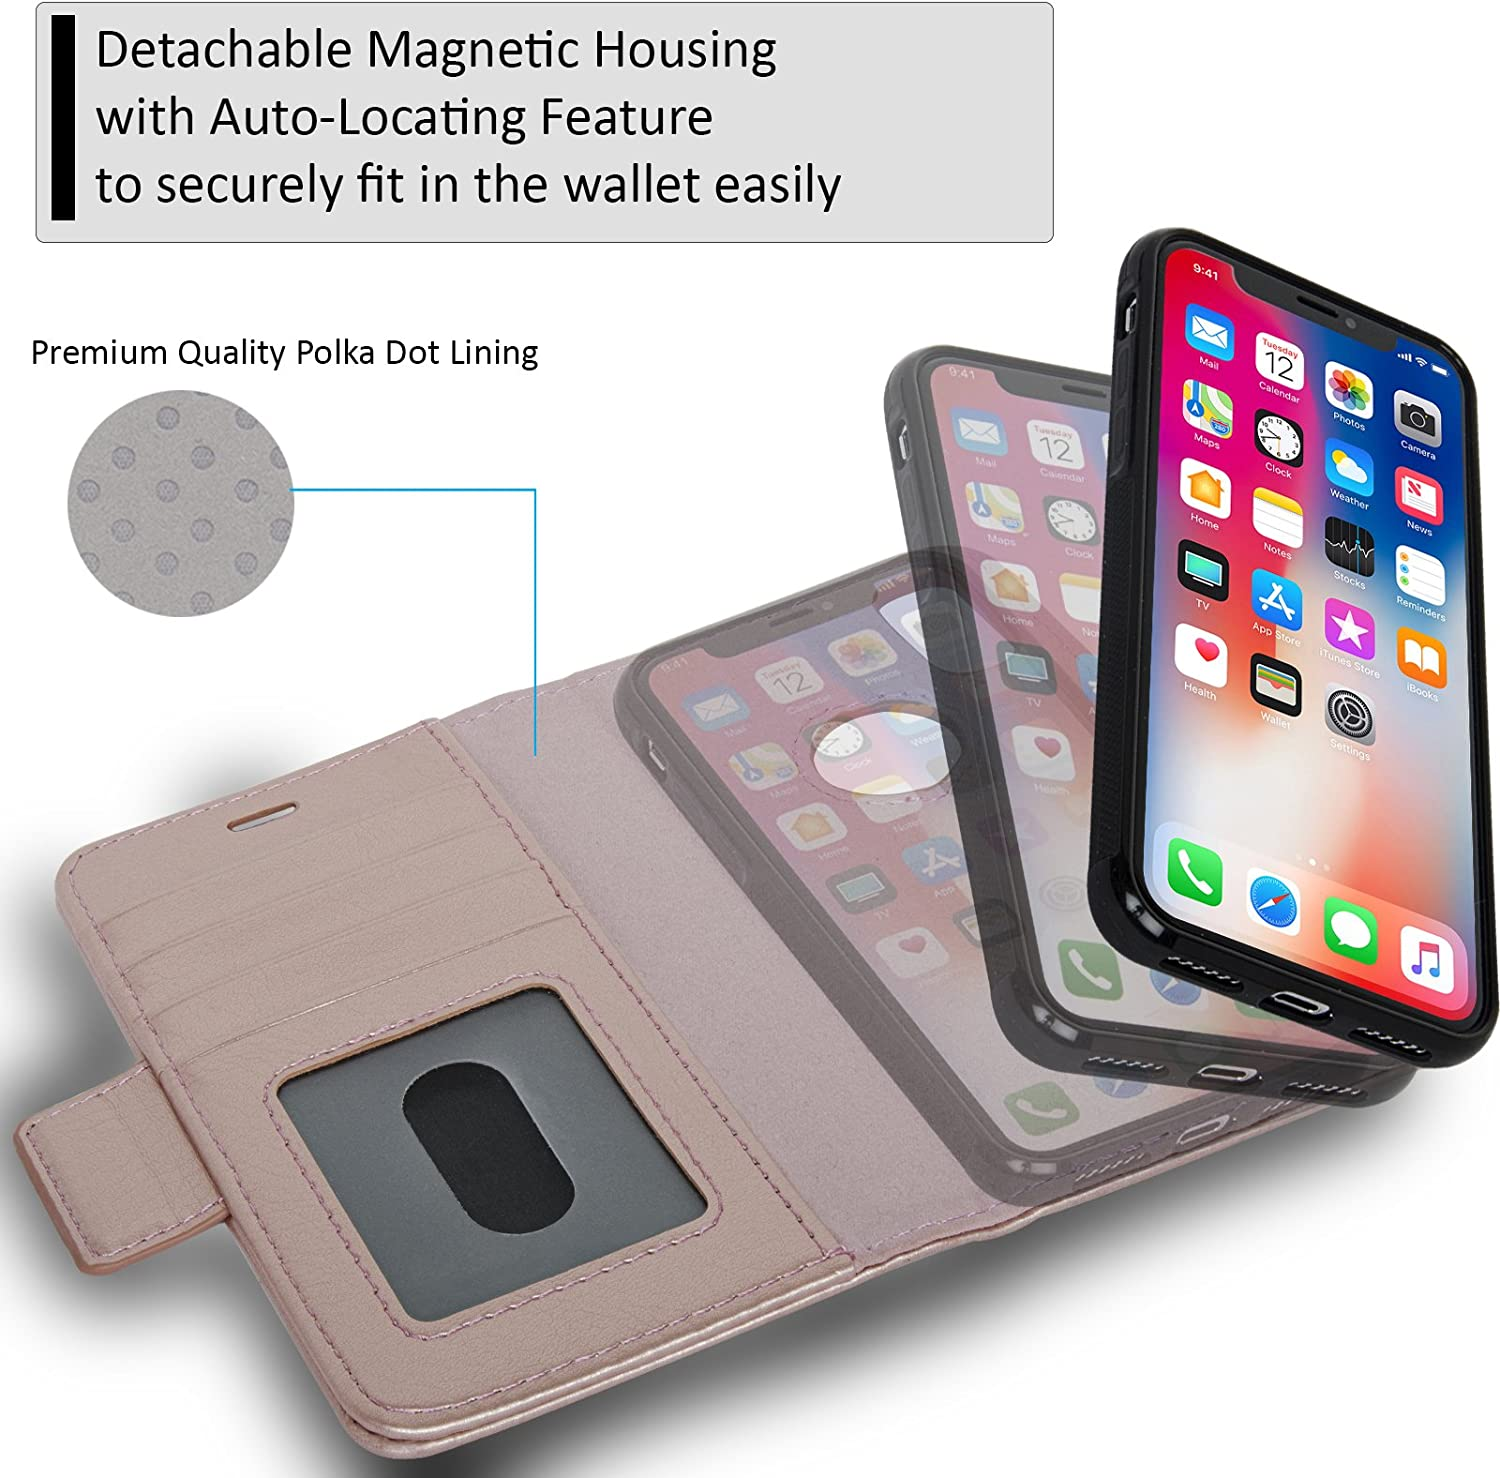 Navor Detachable Magnetic Wallet Case and Universal Car Mount Compatible for iPhone 8 Plus RFID Protection Vajio Series -Mint